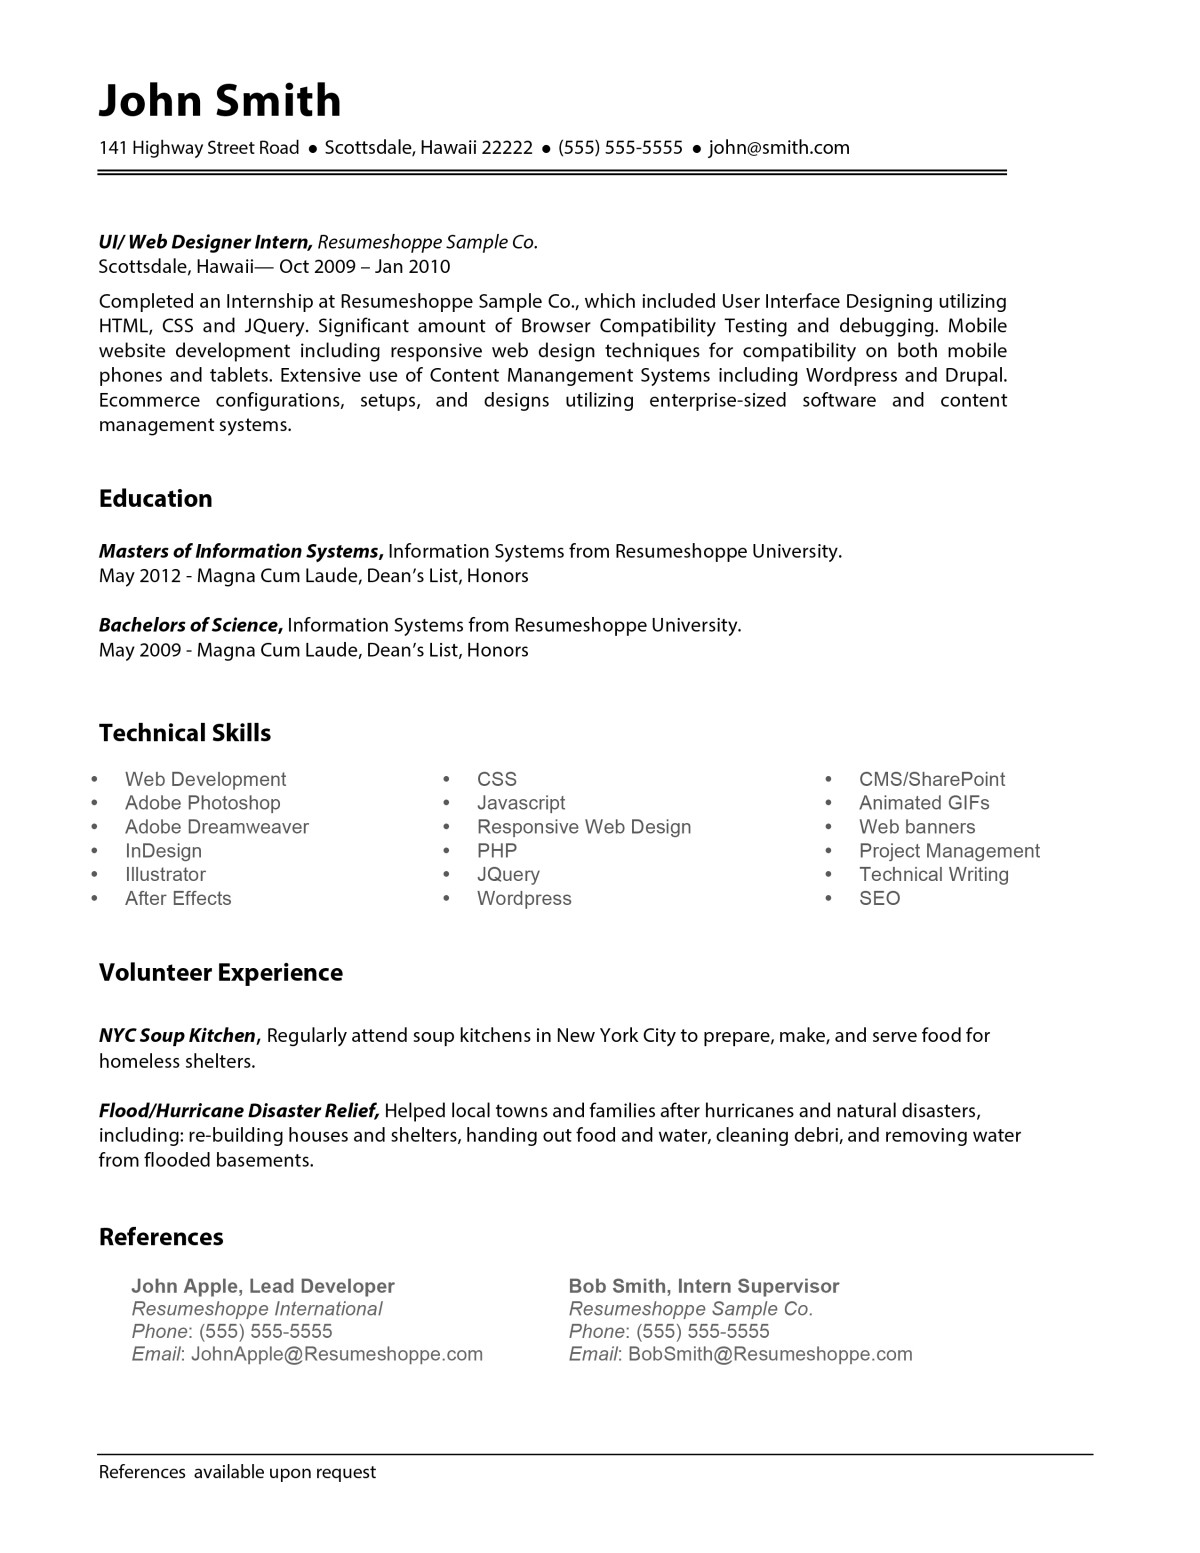 The John Resume Crafted For Your Next Career Step